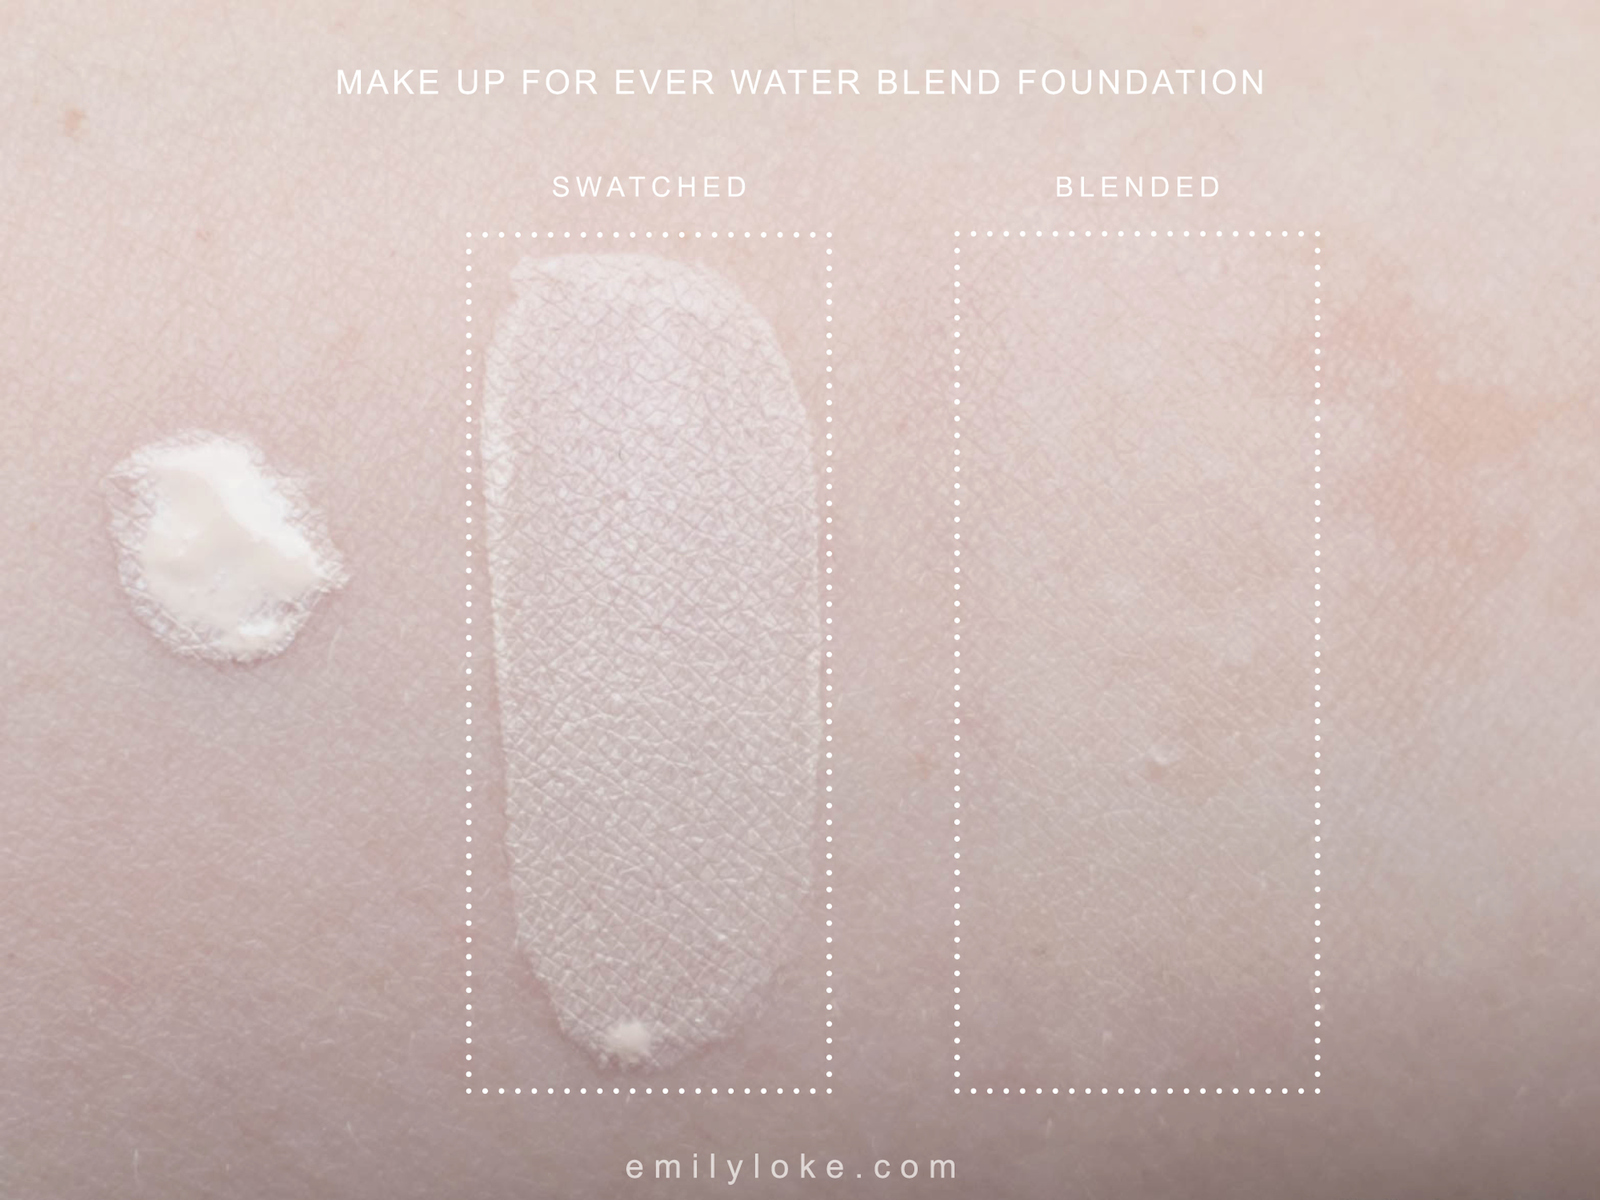 Make Up For Ever Water Blend Swatch